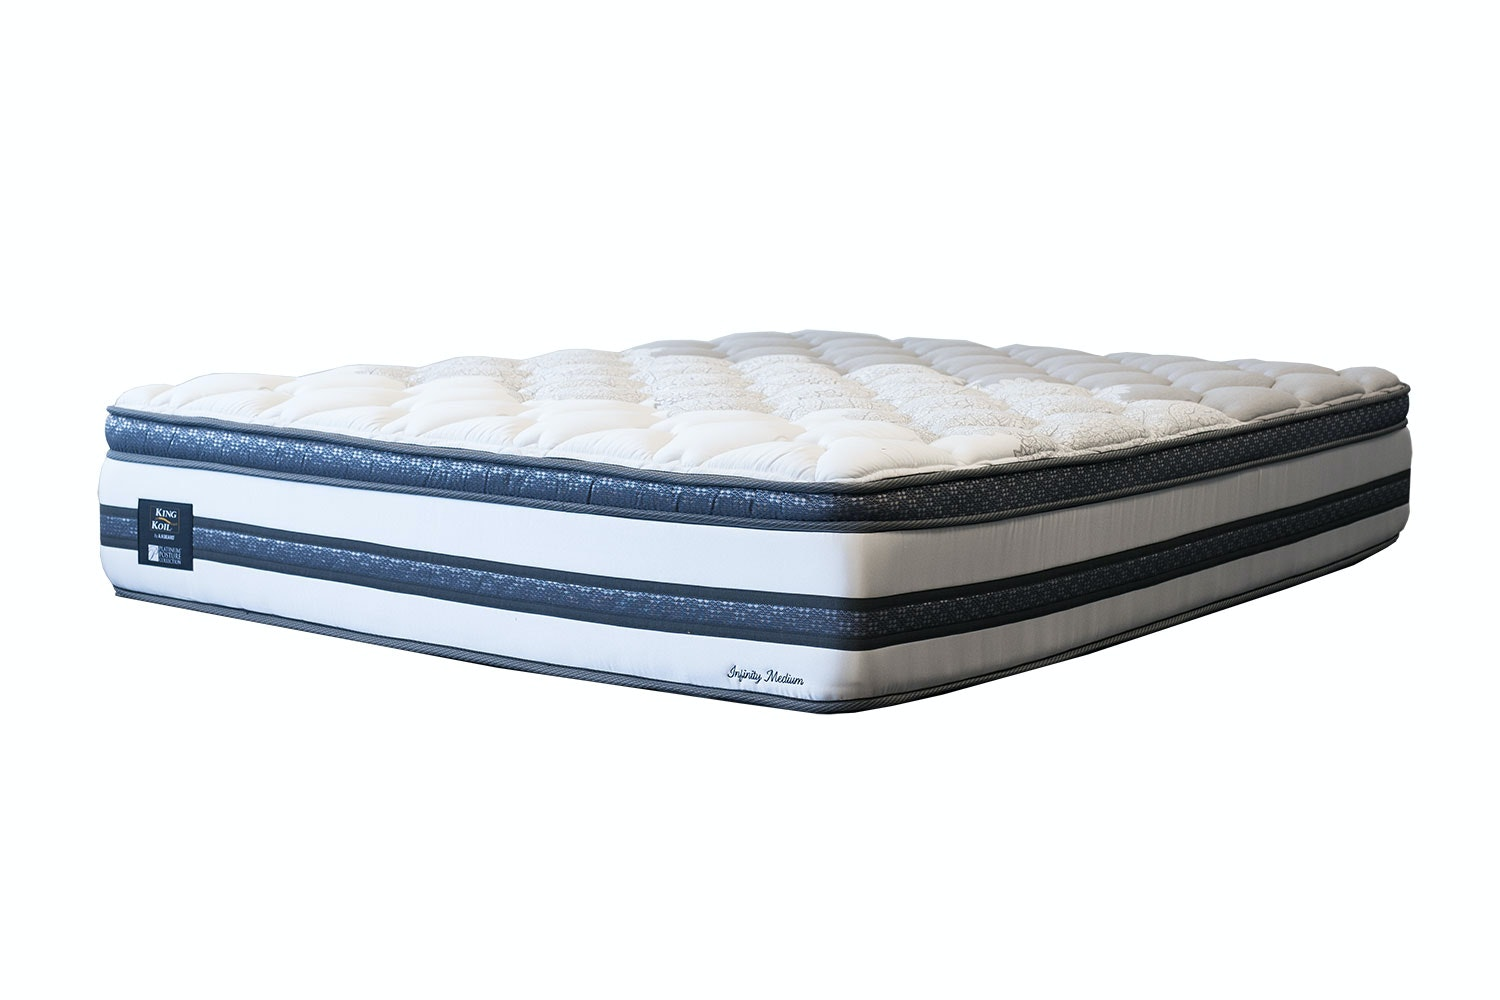 Infinity Medium Queen Mattress by King Koil